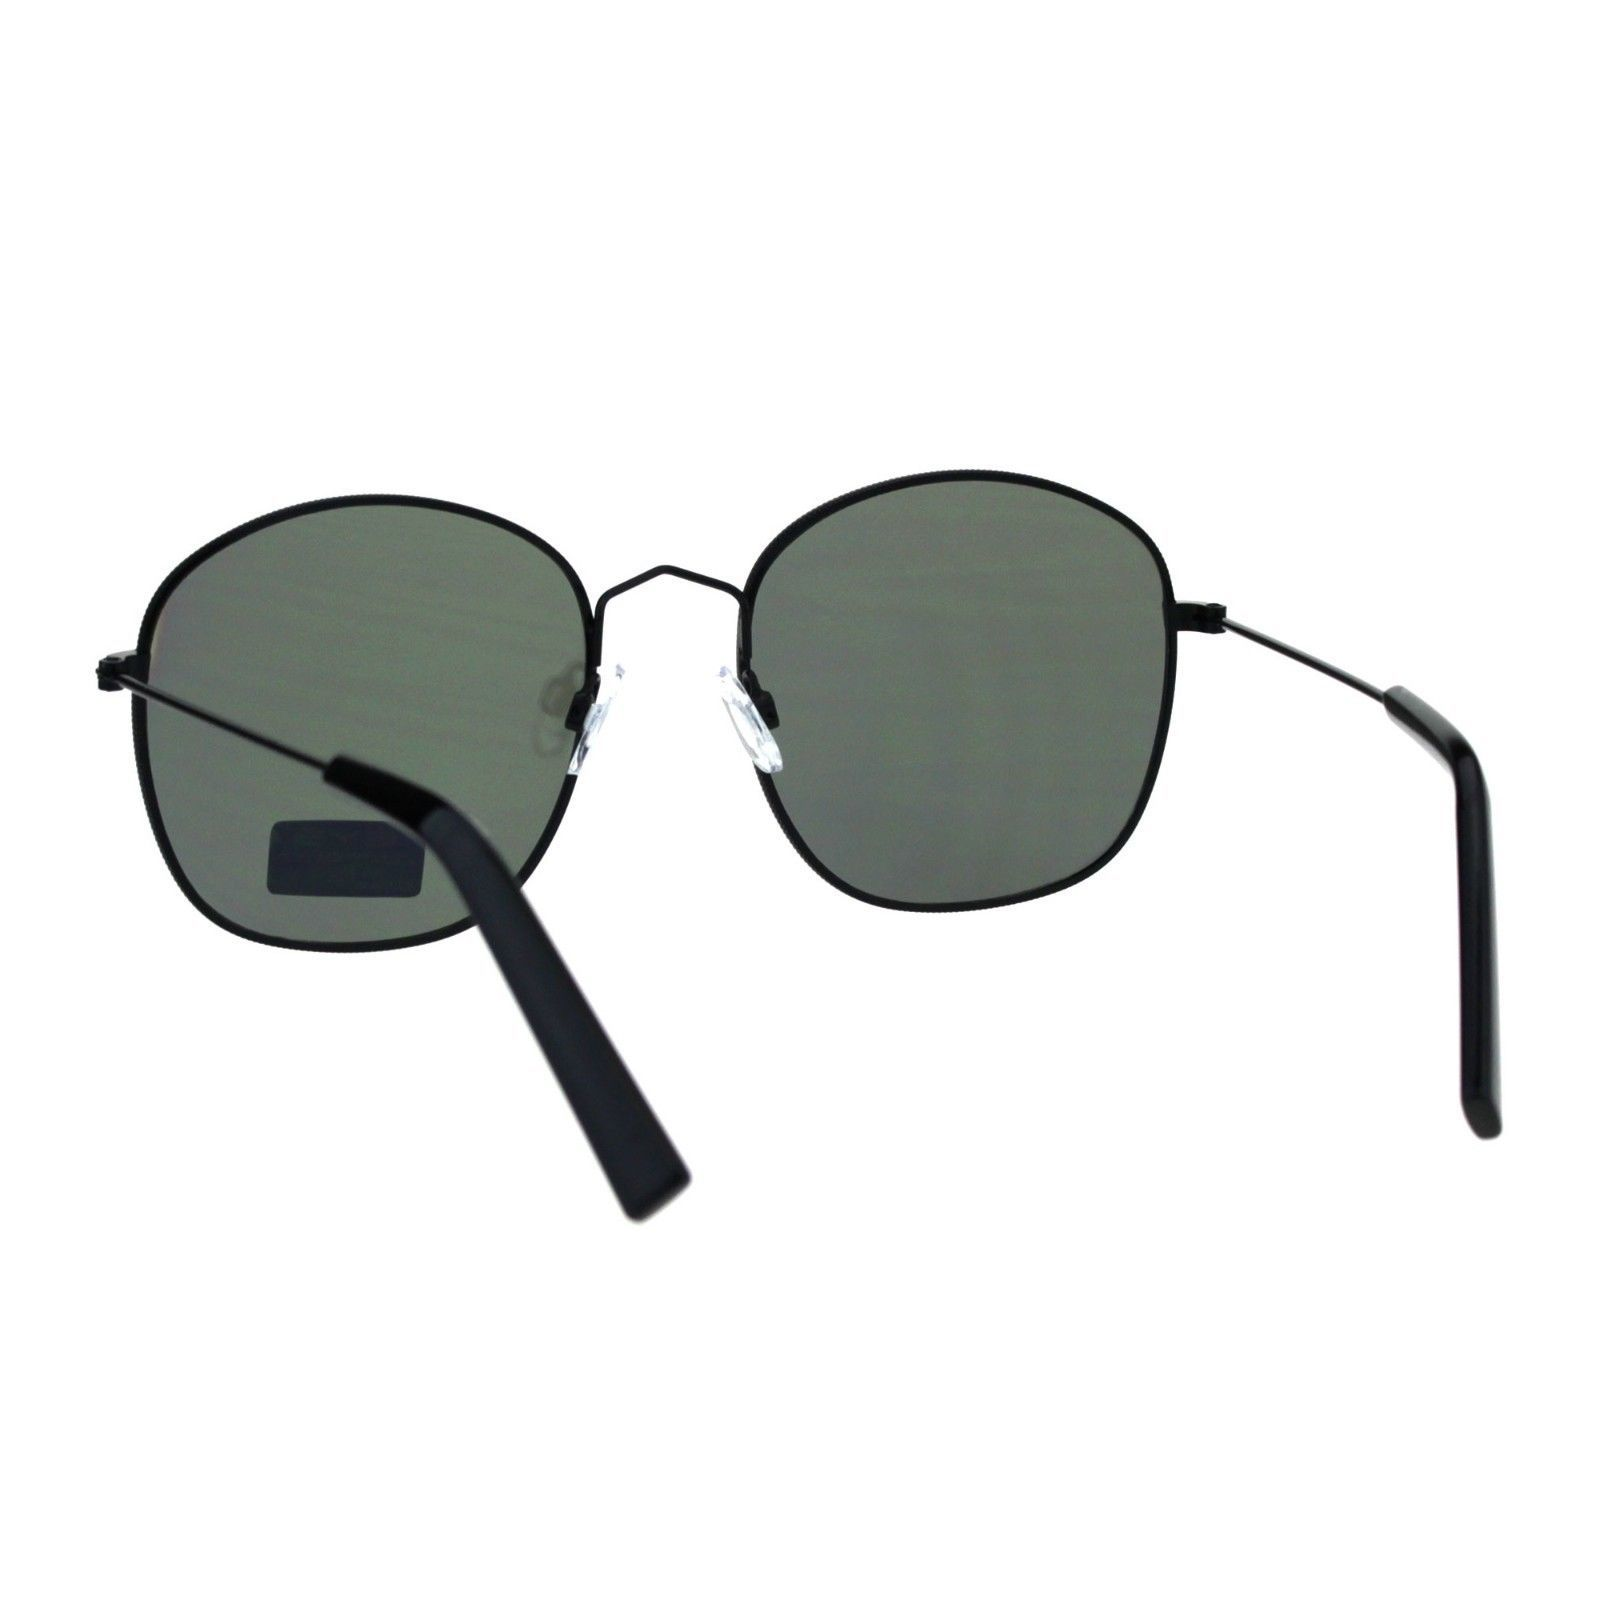 Vintage Fashion Sunglasses Womens Square Round Metal Frame UV 400